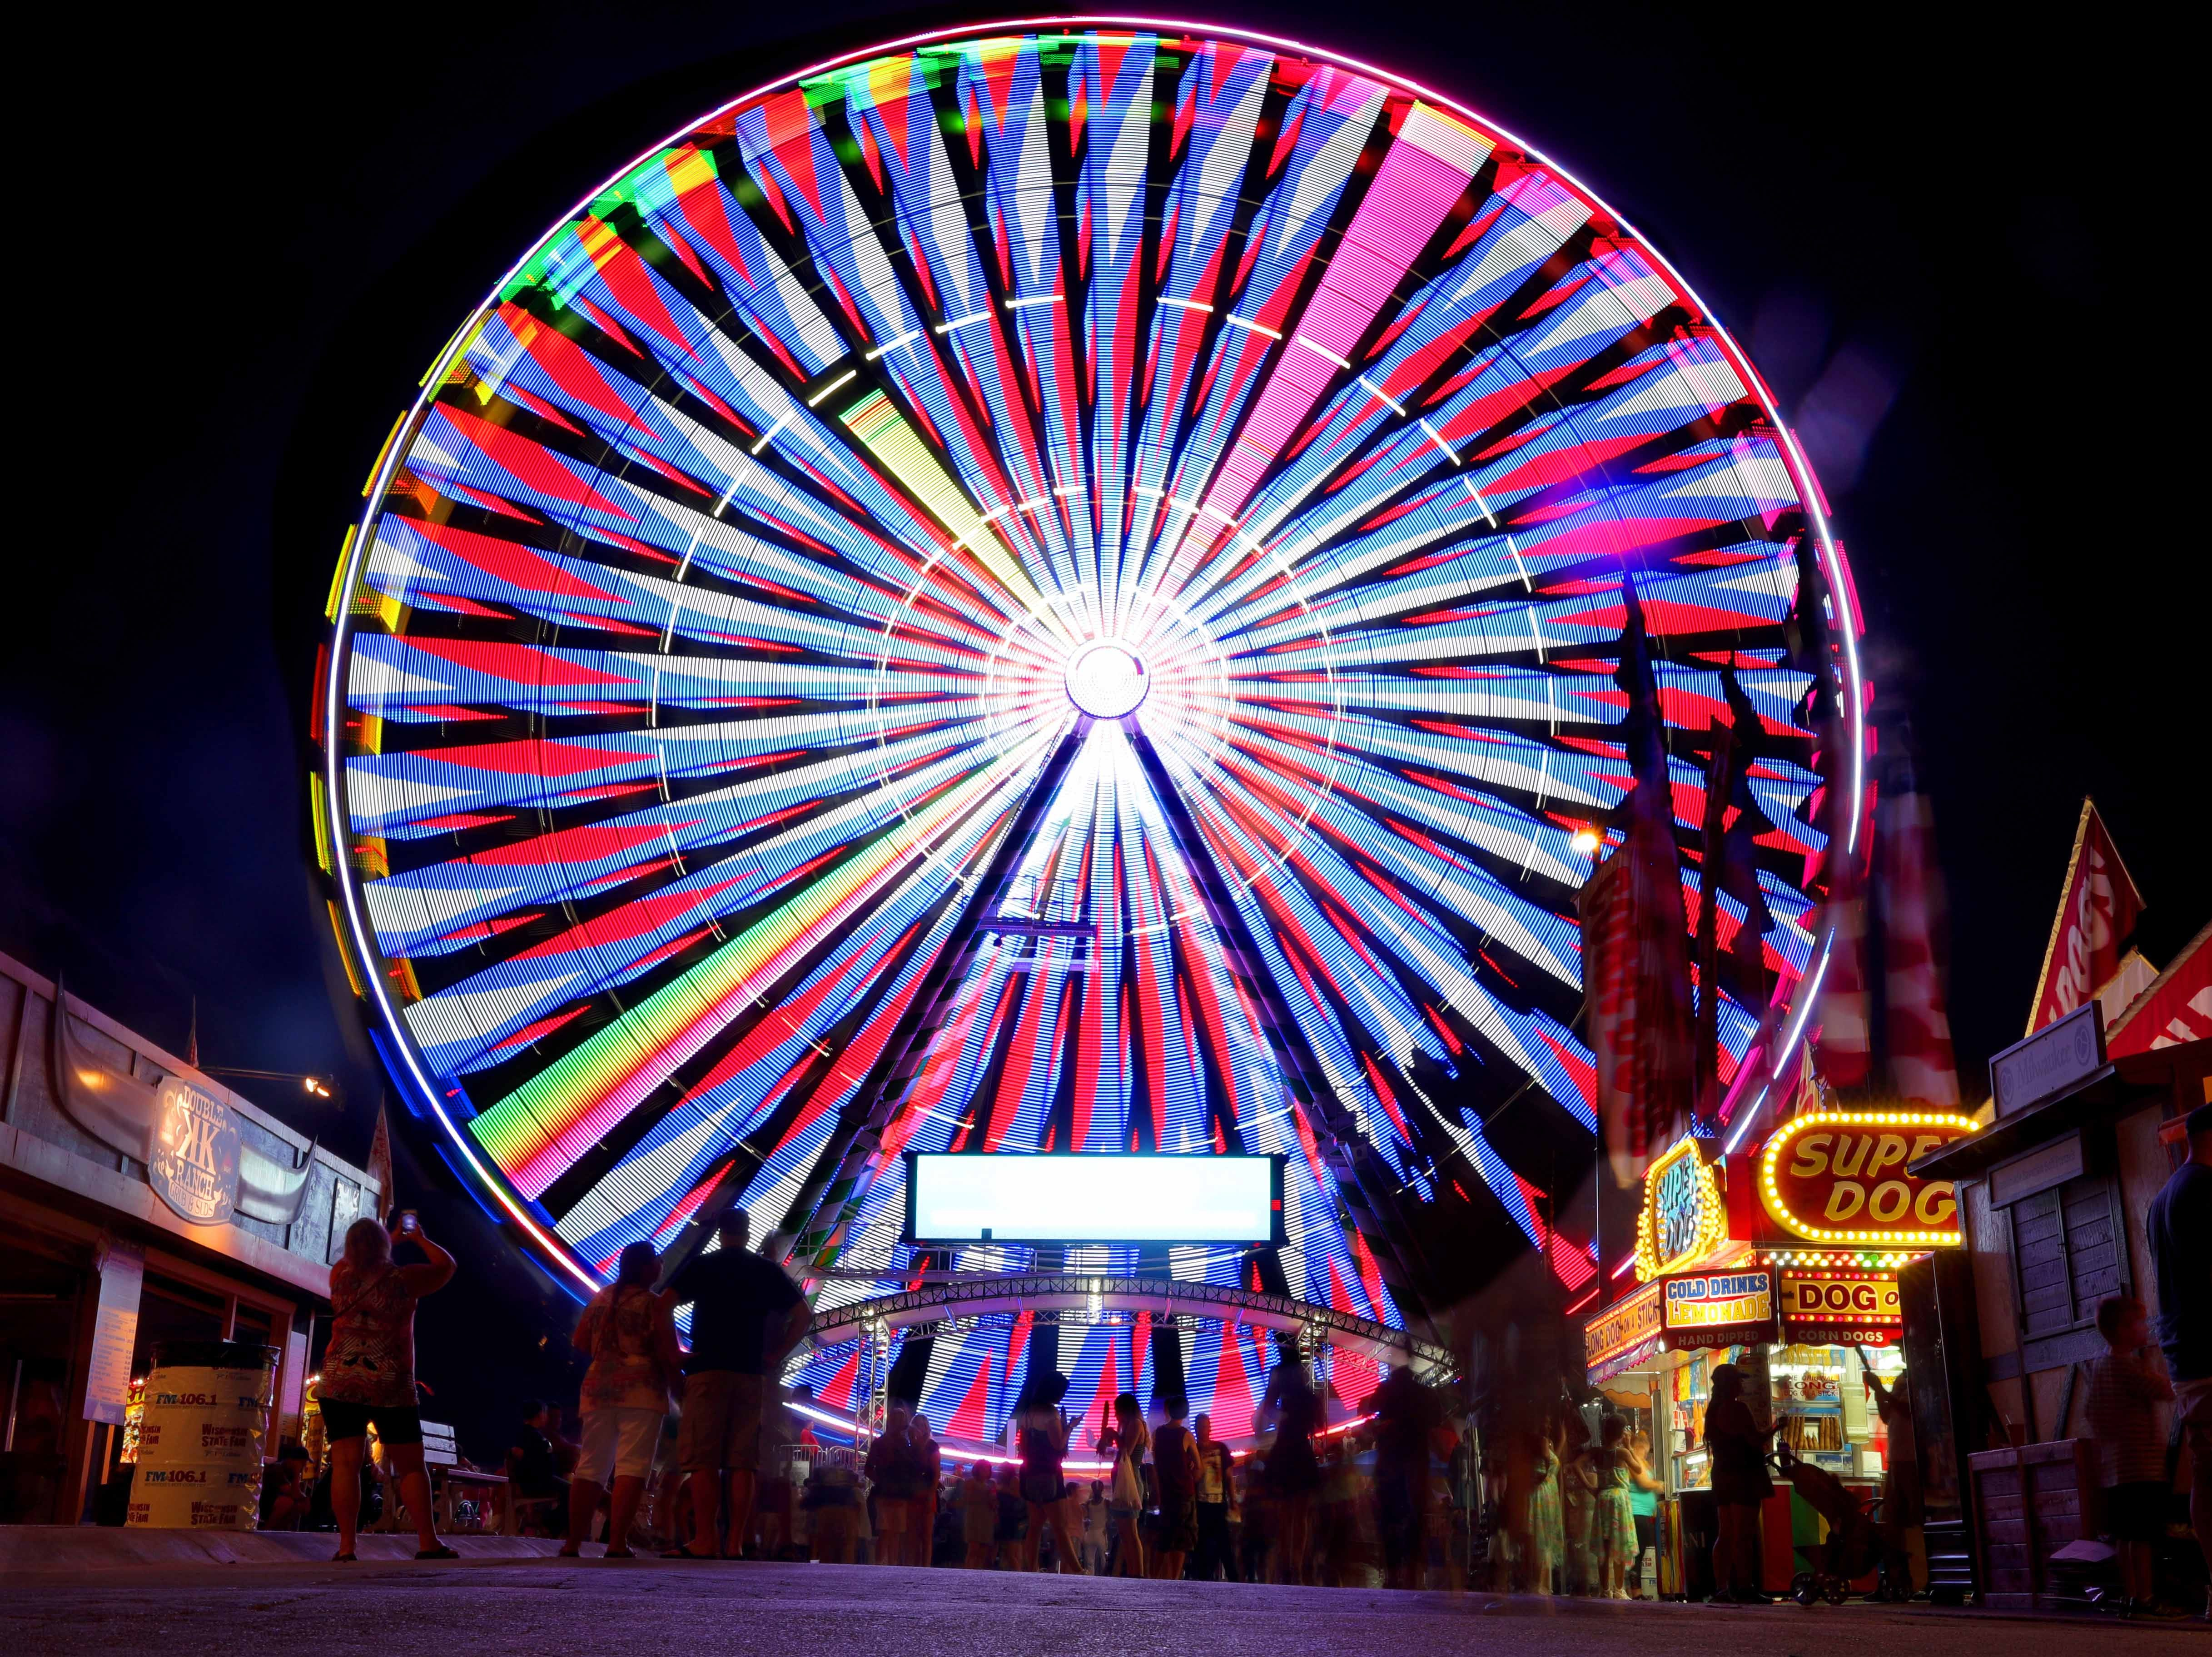 The WonderFair Wheel, which stands 15 stories tall, glows on the final night of the Wisconsin State Fair Sunday, Aug. 12, 2018.